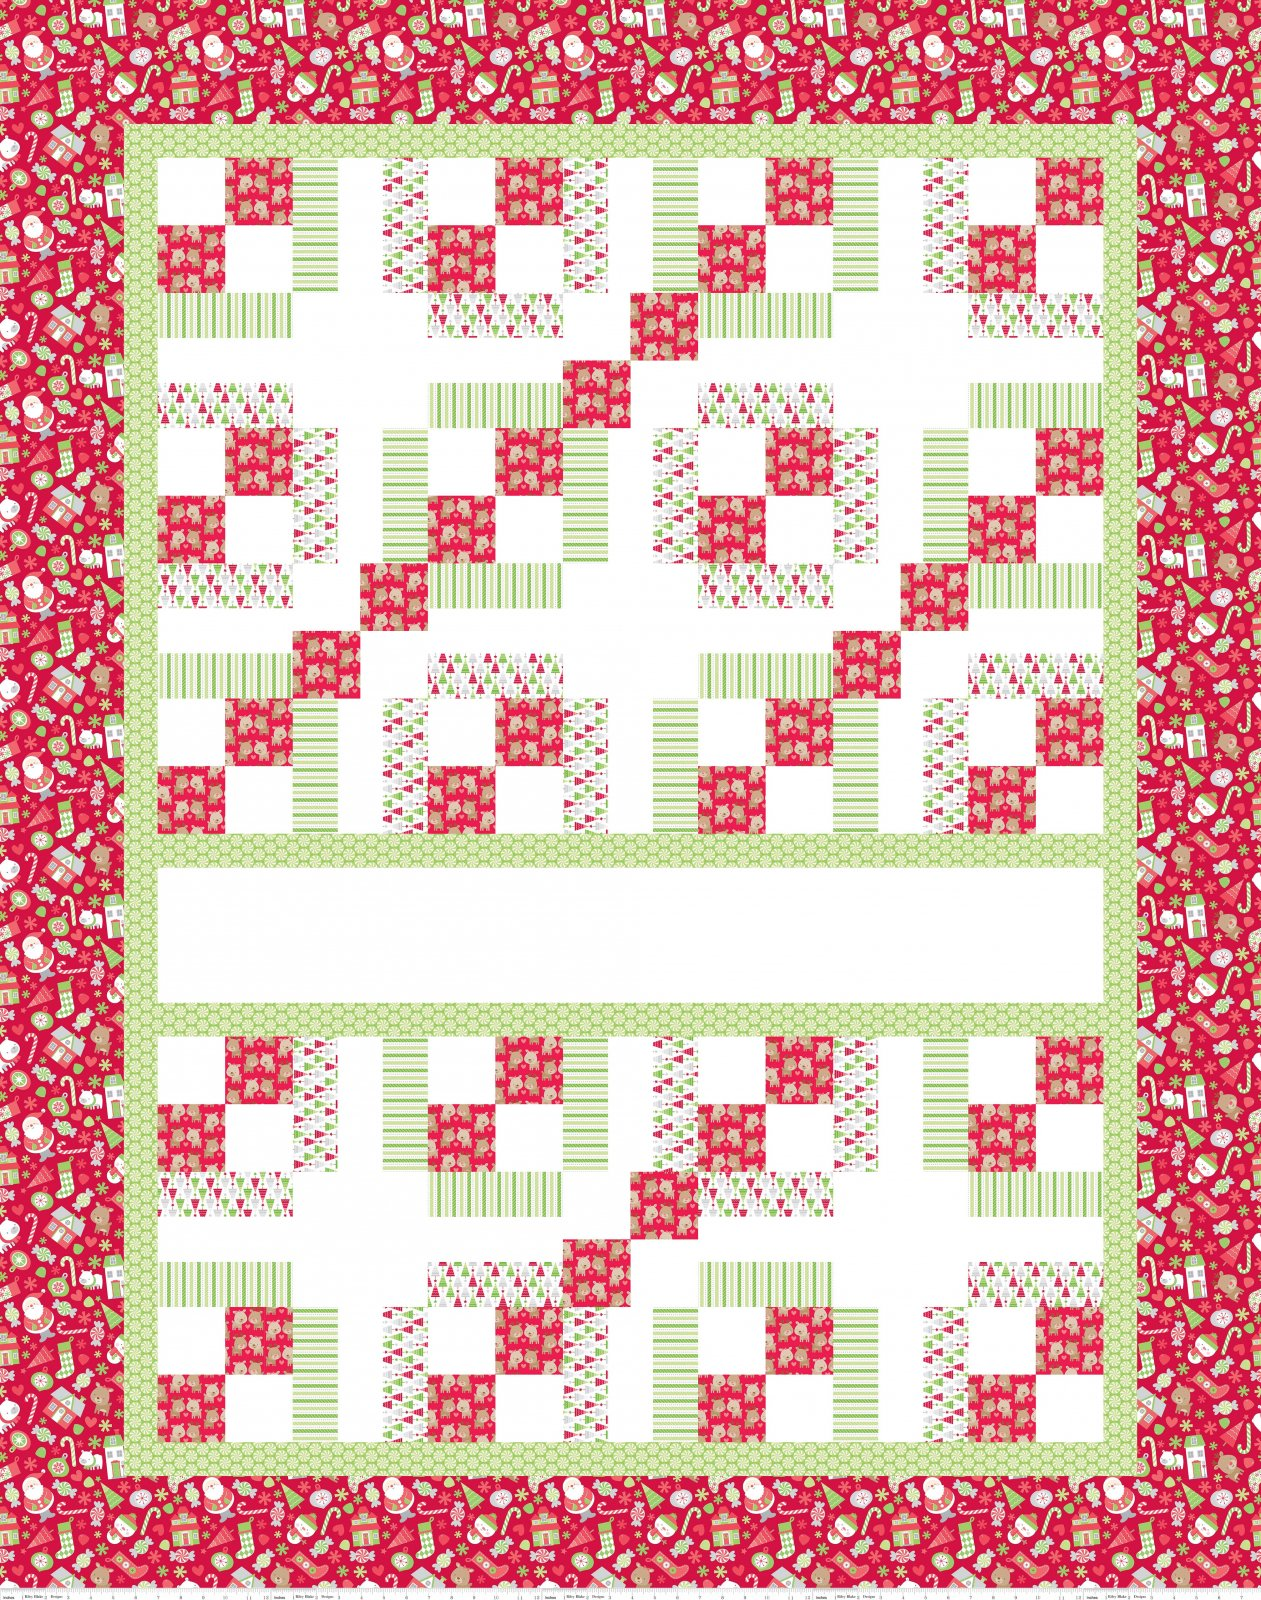 Home for the Holidays Panel Fabric